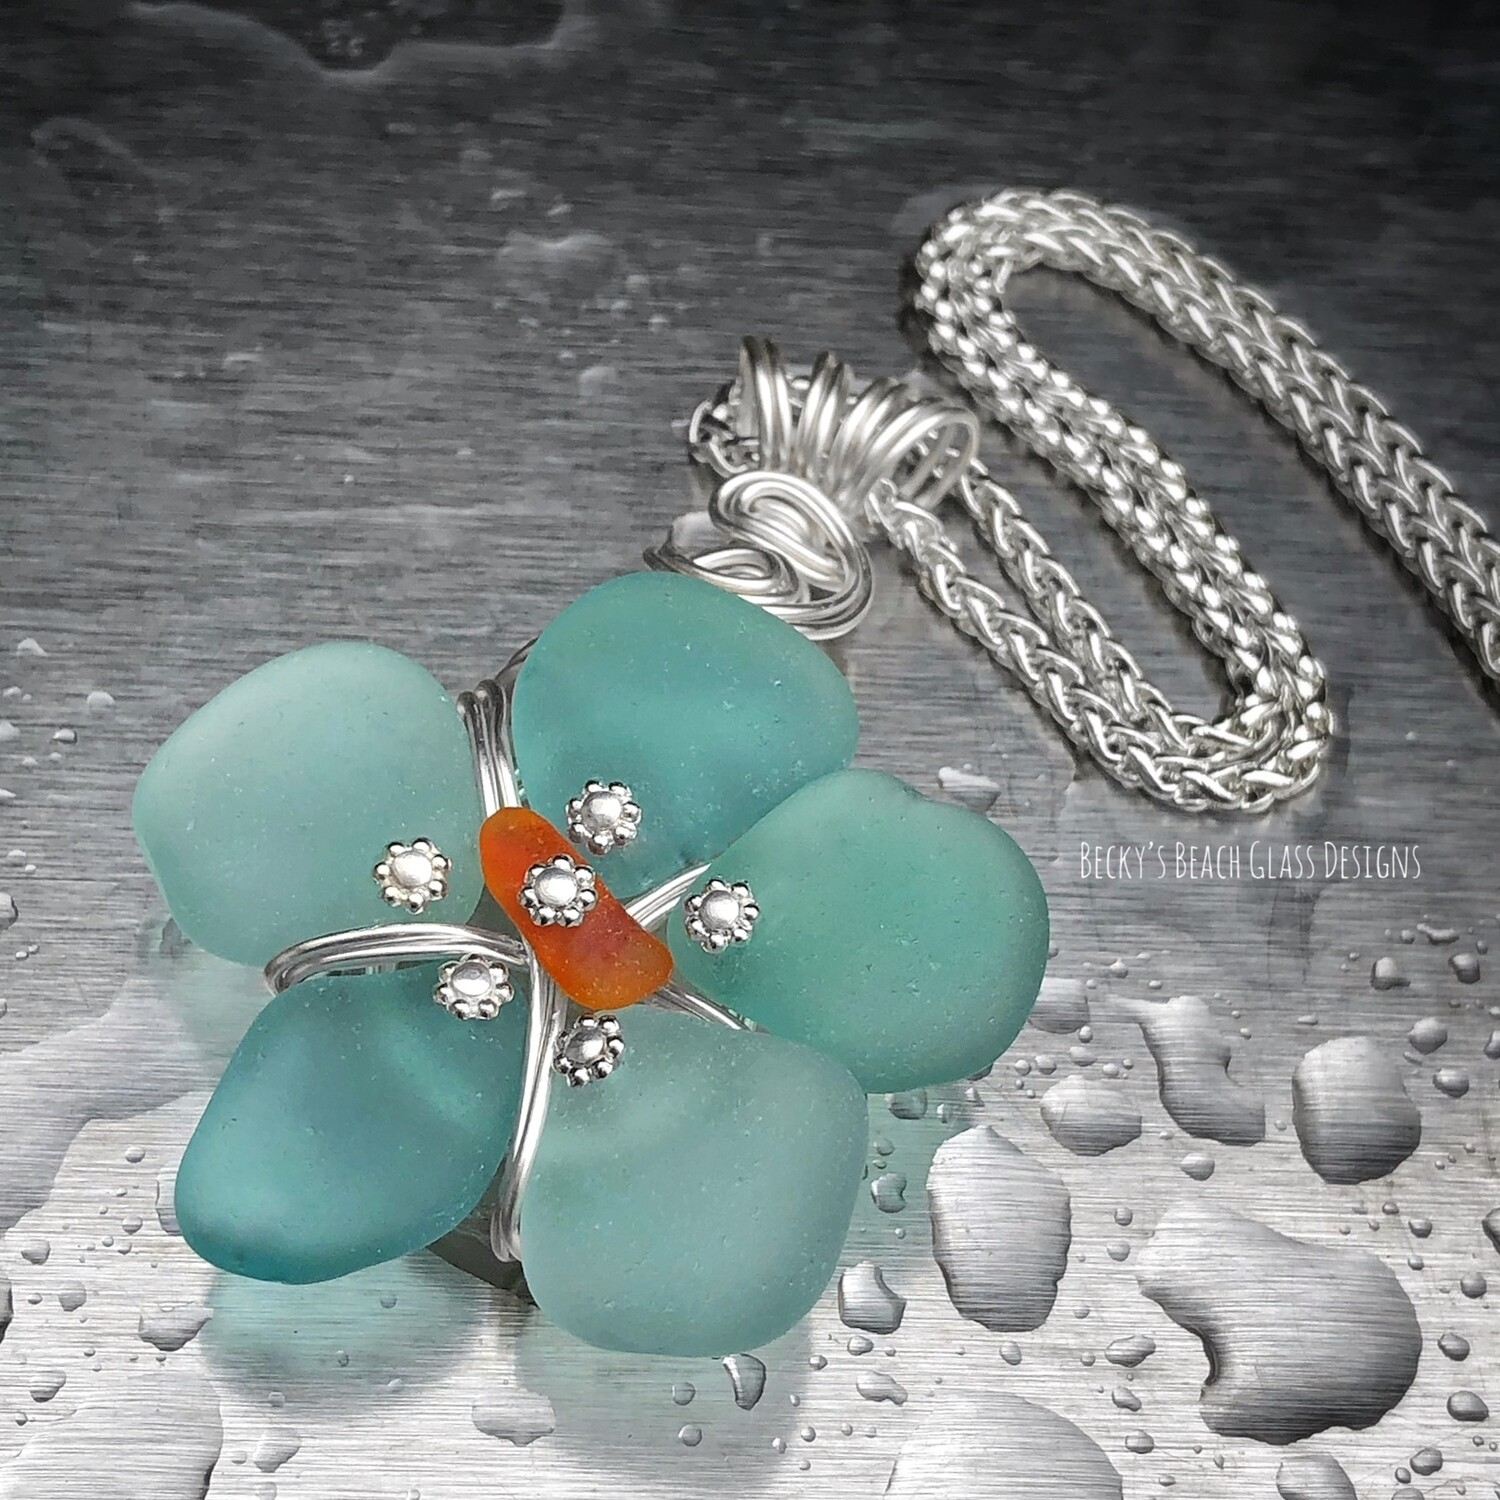 Russian Sea Glass Flower Pendant Necklace w/ Orange Center